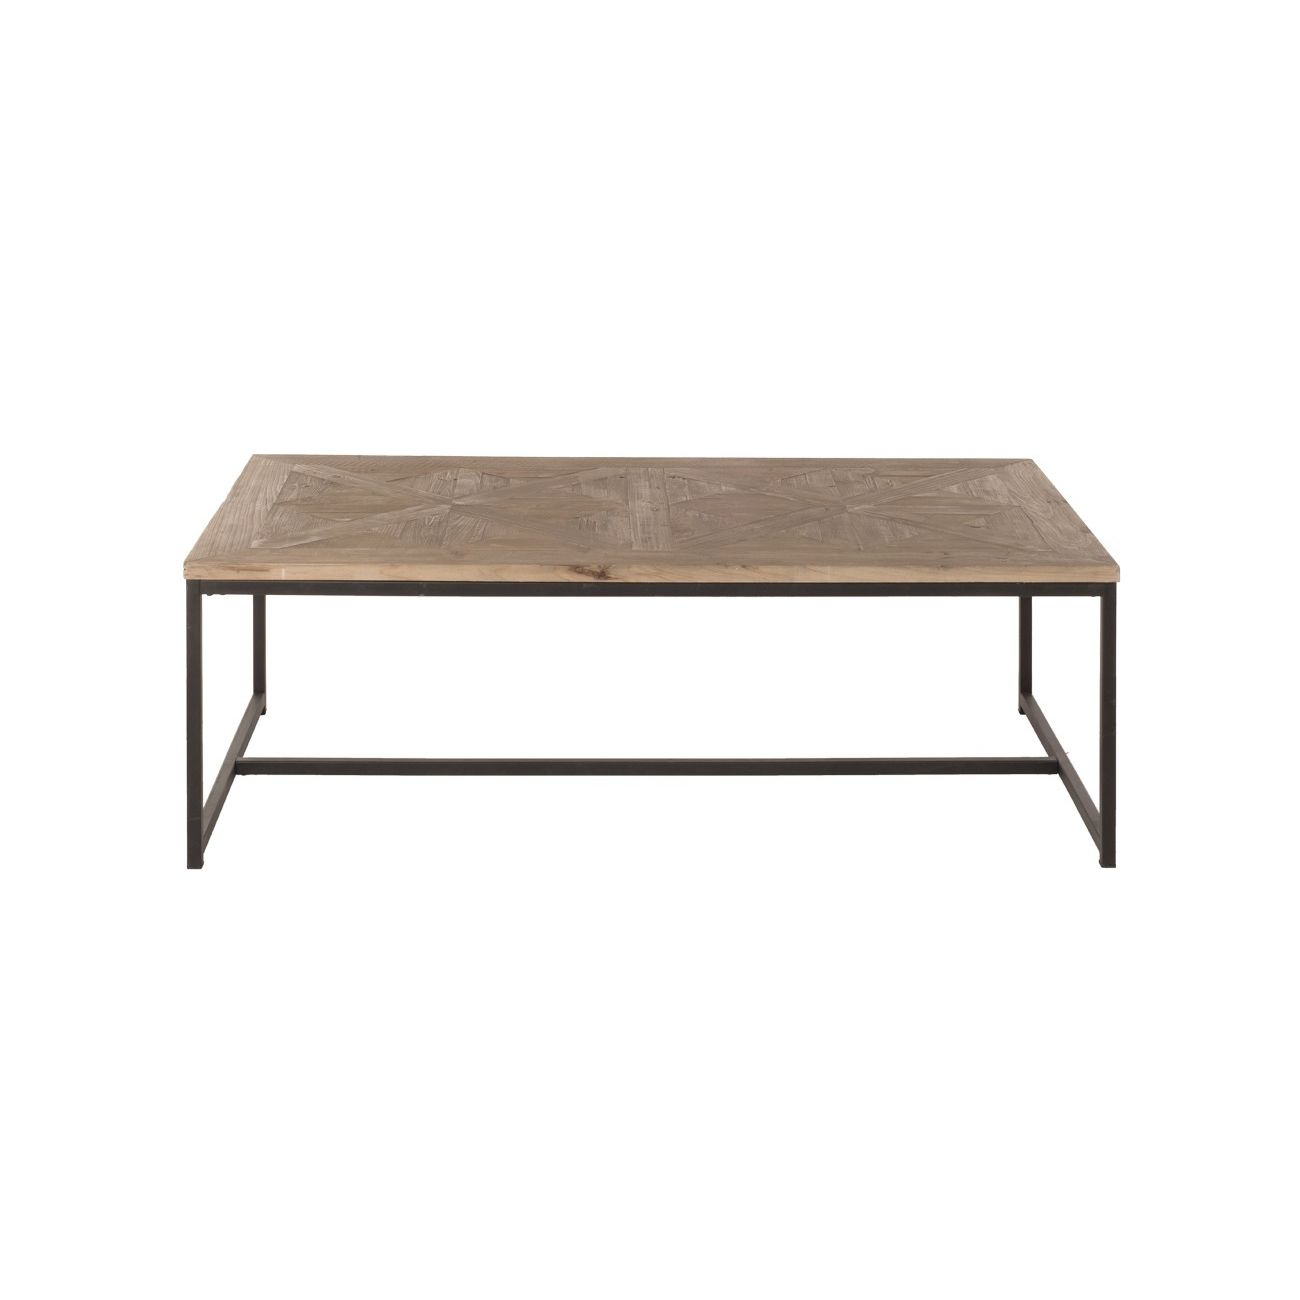 Contemporary Coffee Table Wooden Metal Rectangular Jules